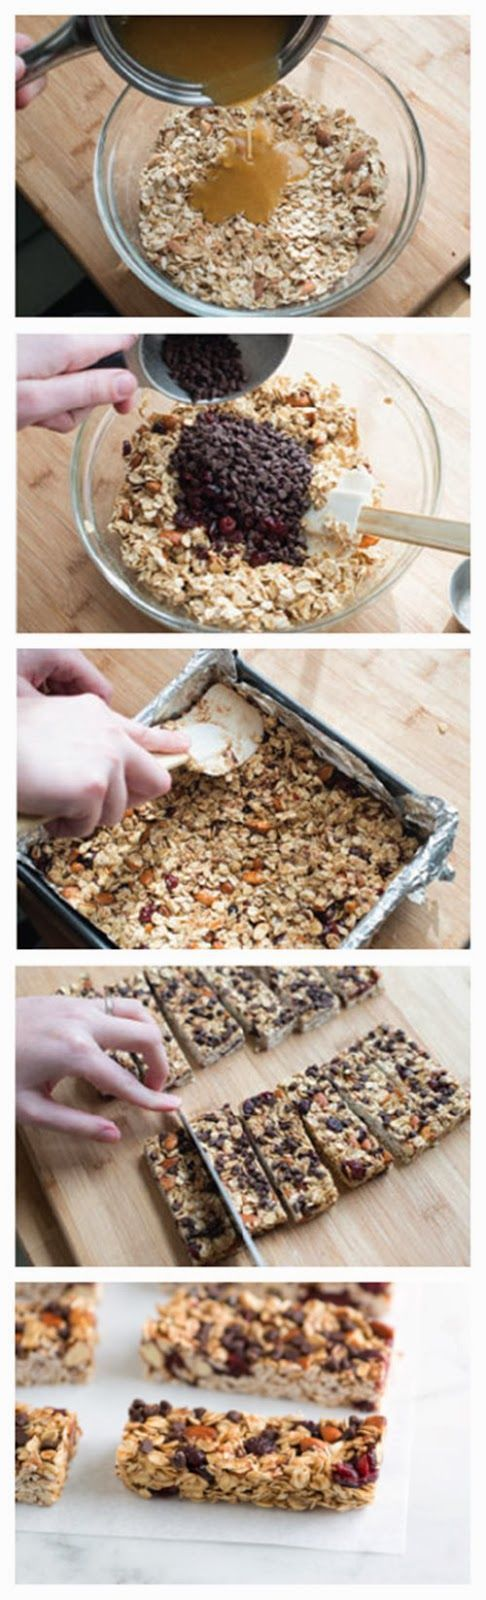 Homemade Energy Snack Bar Recipe